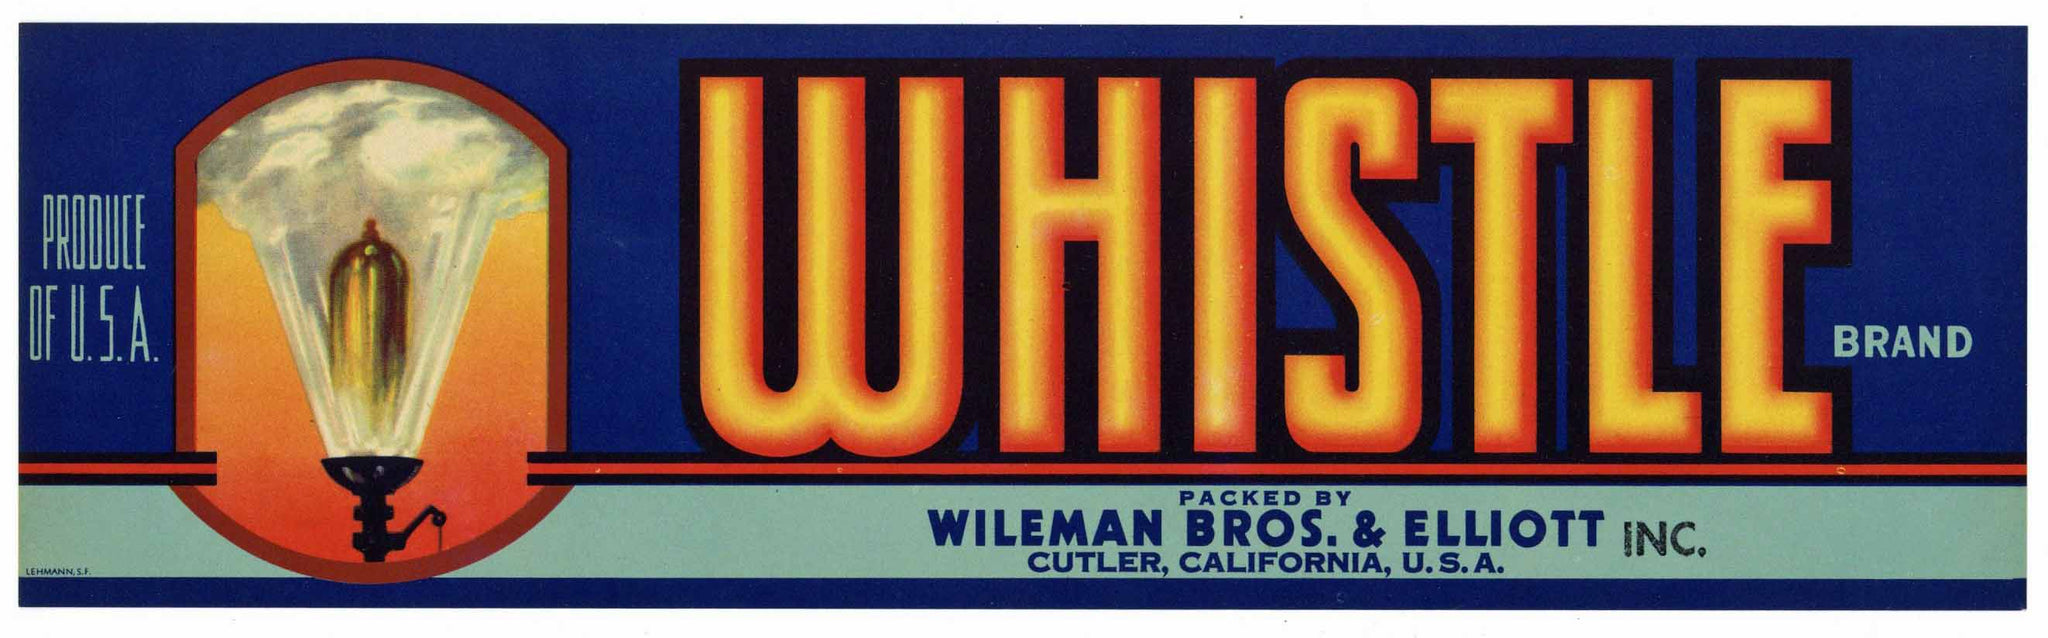 Whistle Brand Vintage Cutler Fruit Crate Label, Railroad